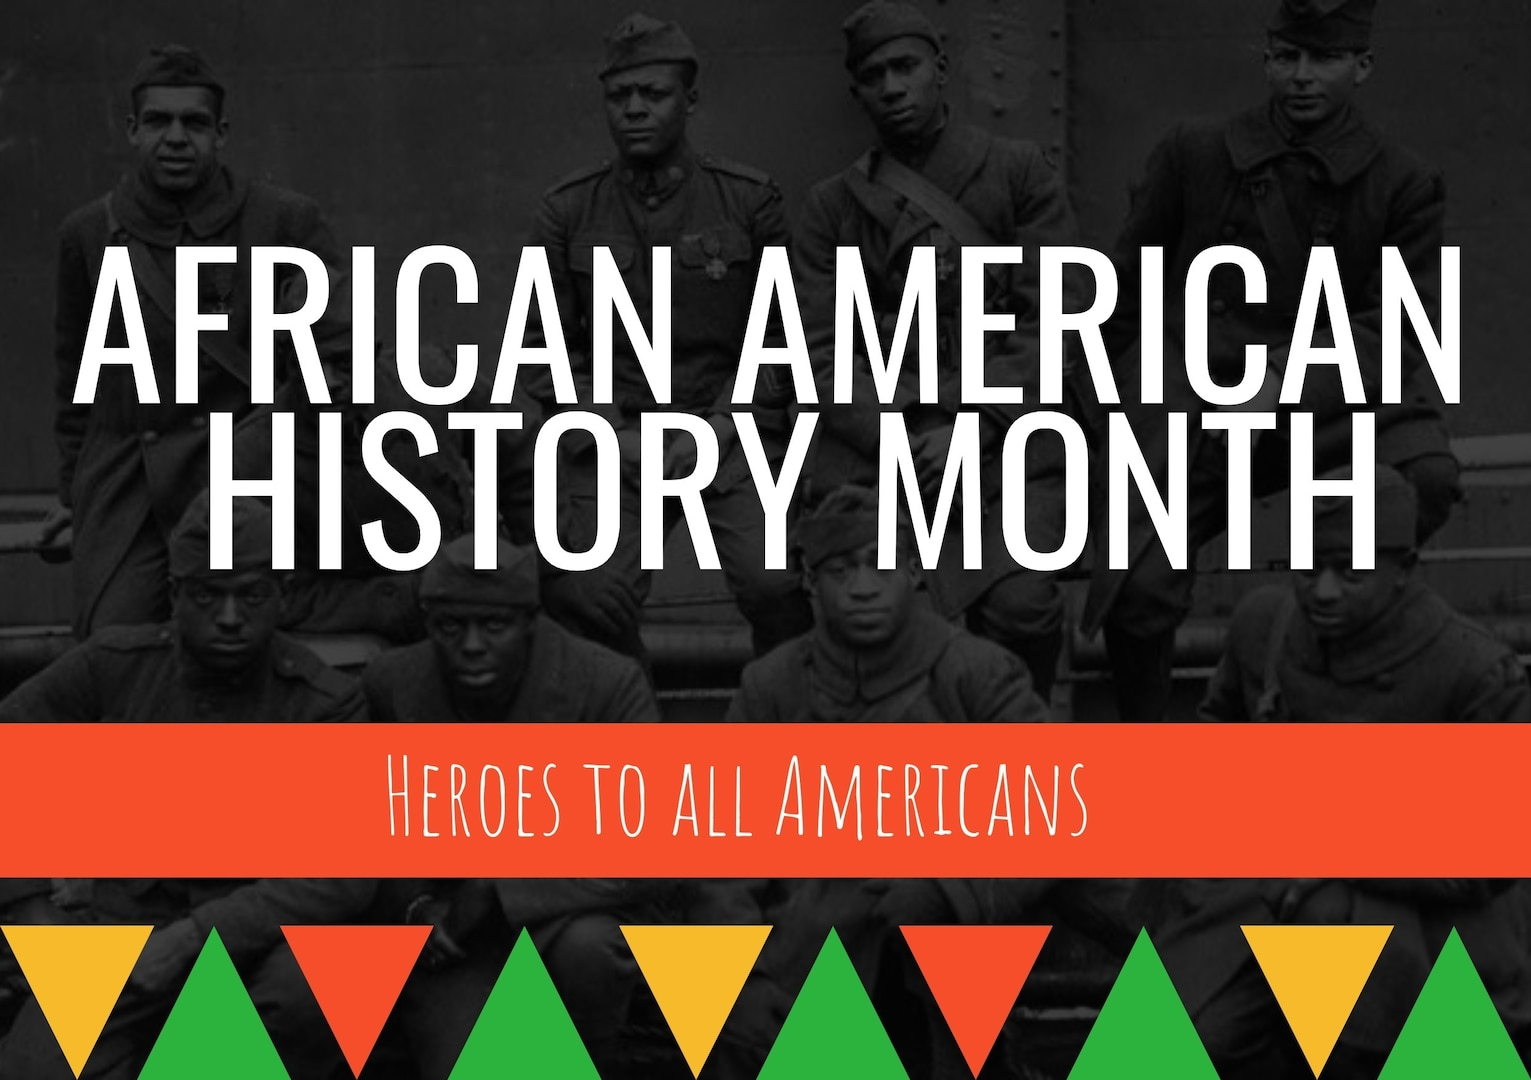 February, as Black History Month, is a time to reflect on the contributions of African-Americans to our country. Though no single article can adequately cover African-American history justly, there are few areas that can rival the vast participation of African-Americans in war.